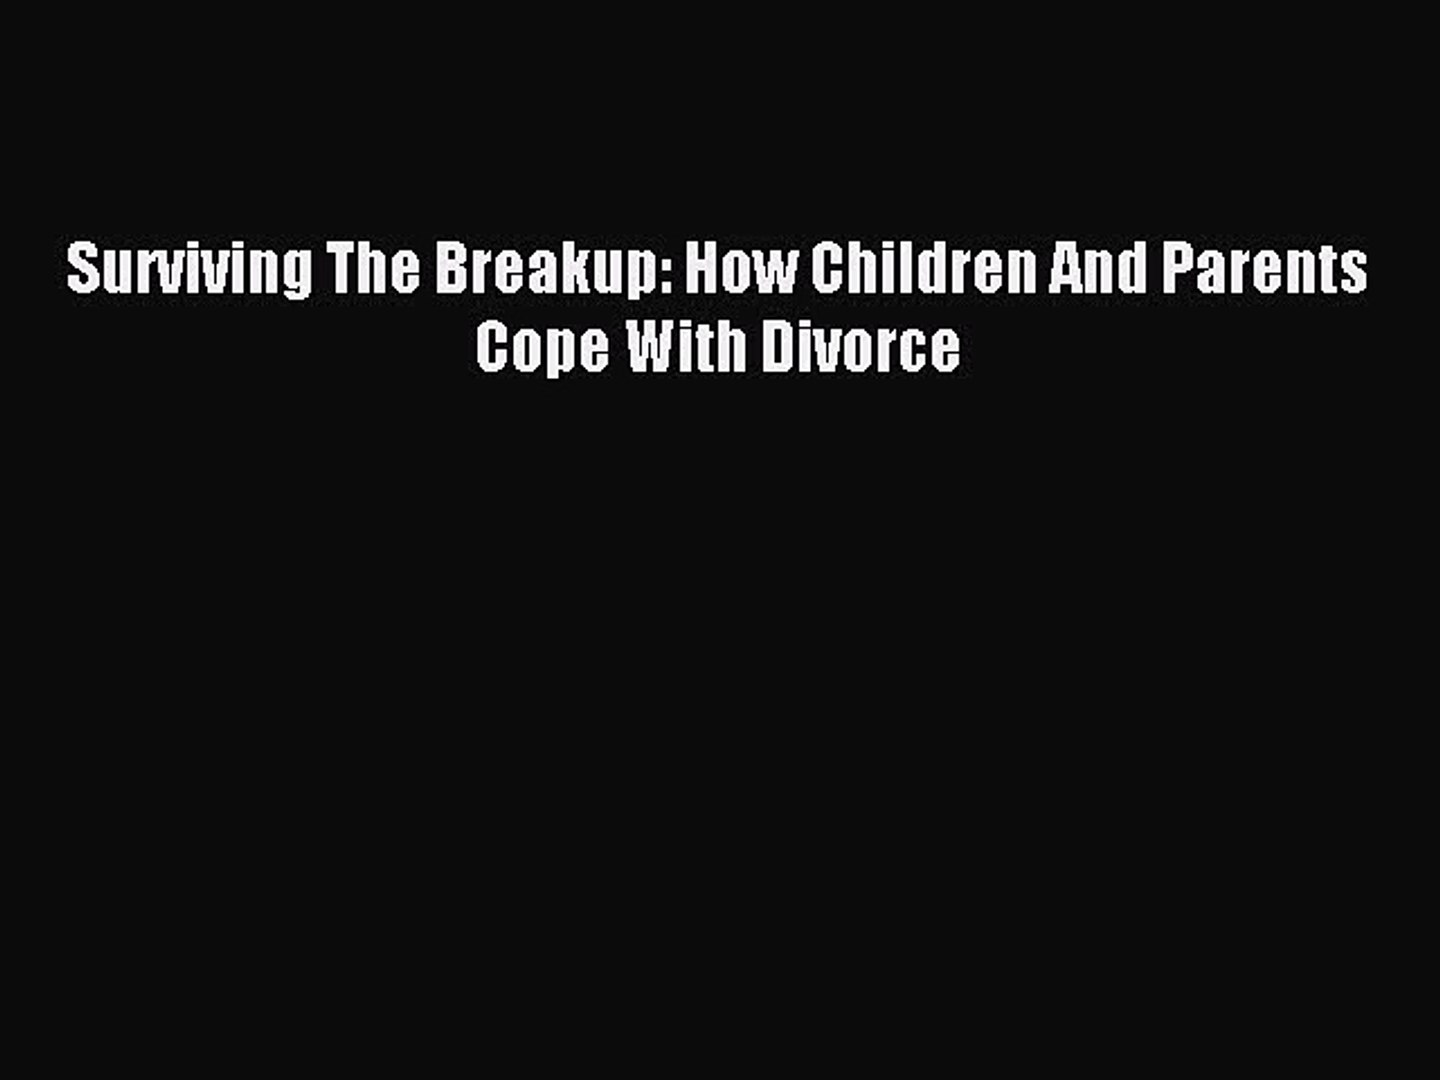 Download Surviving The Breakup: How Children And Parents Cope With Divorce  Ebook Free